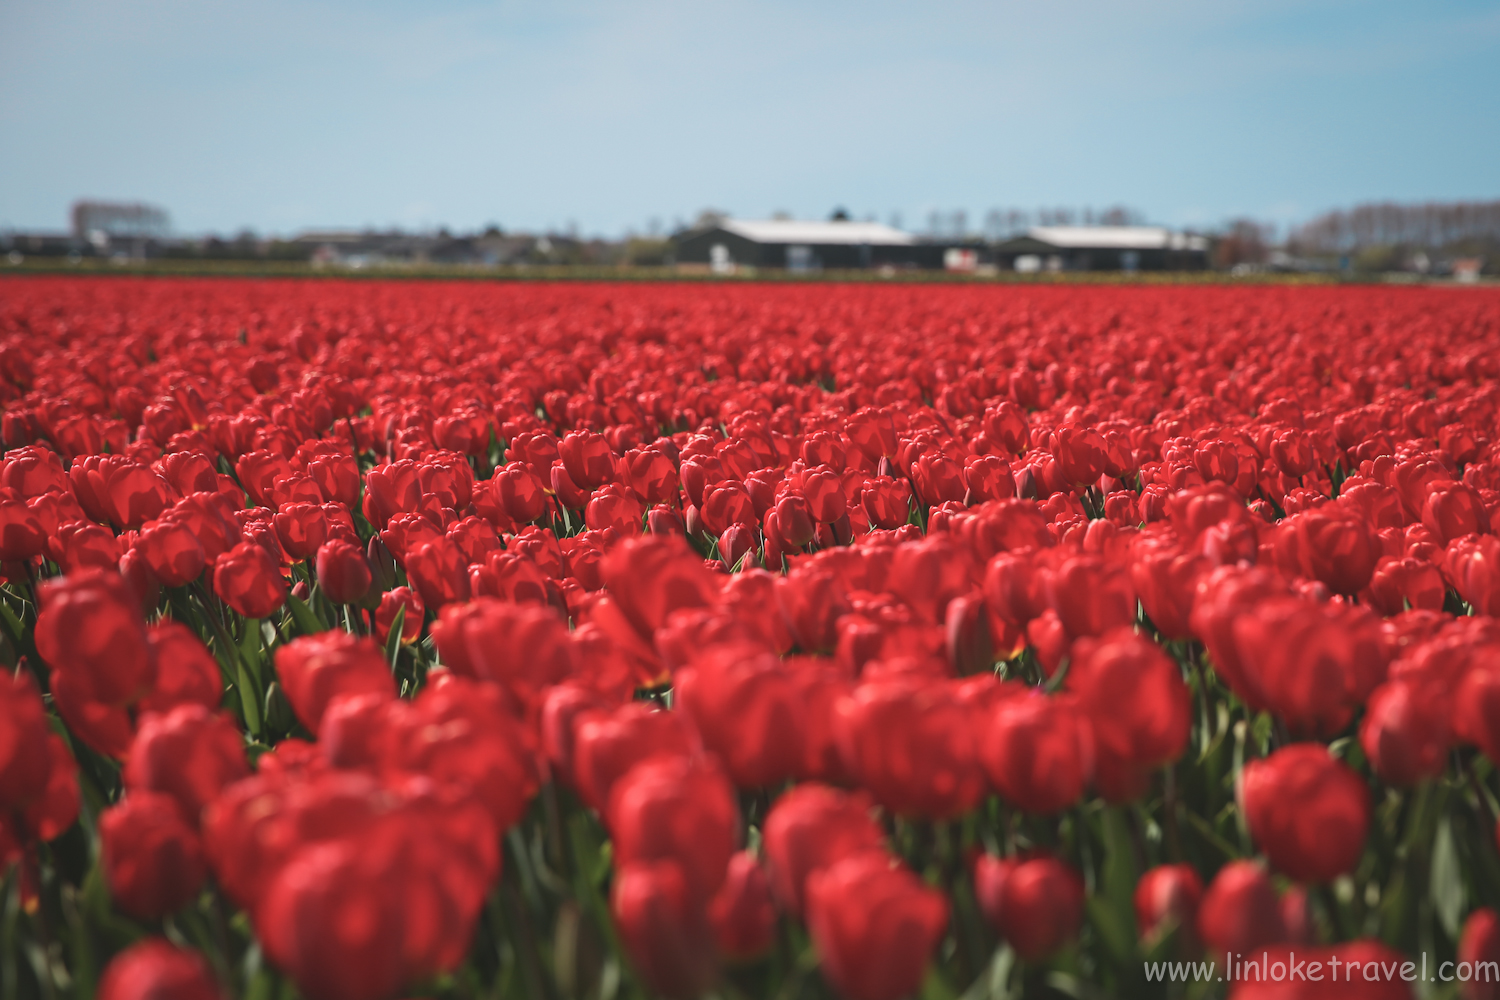 Bold red tulips